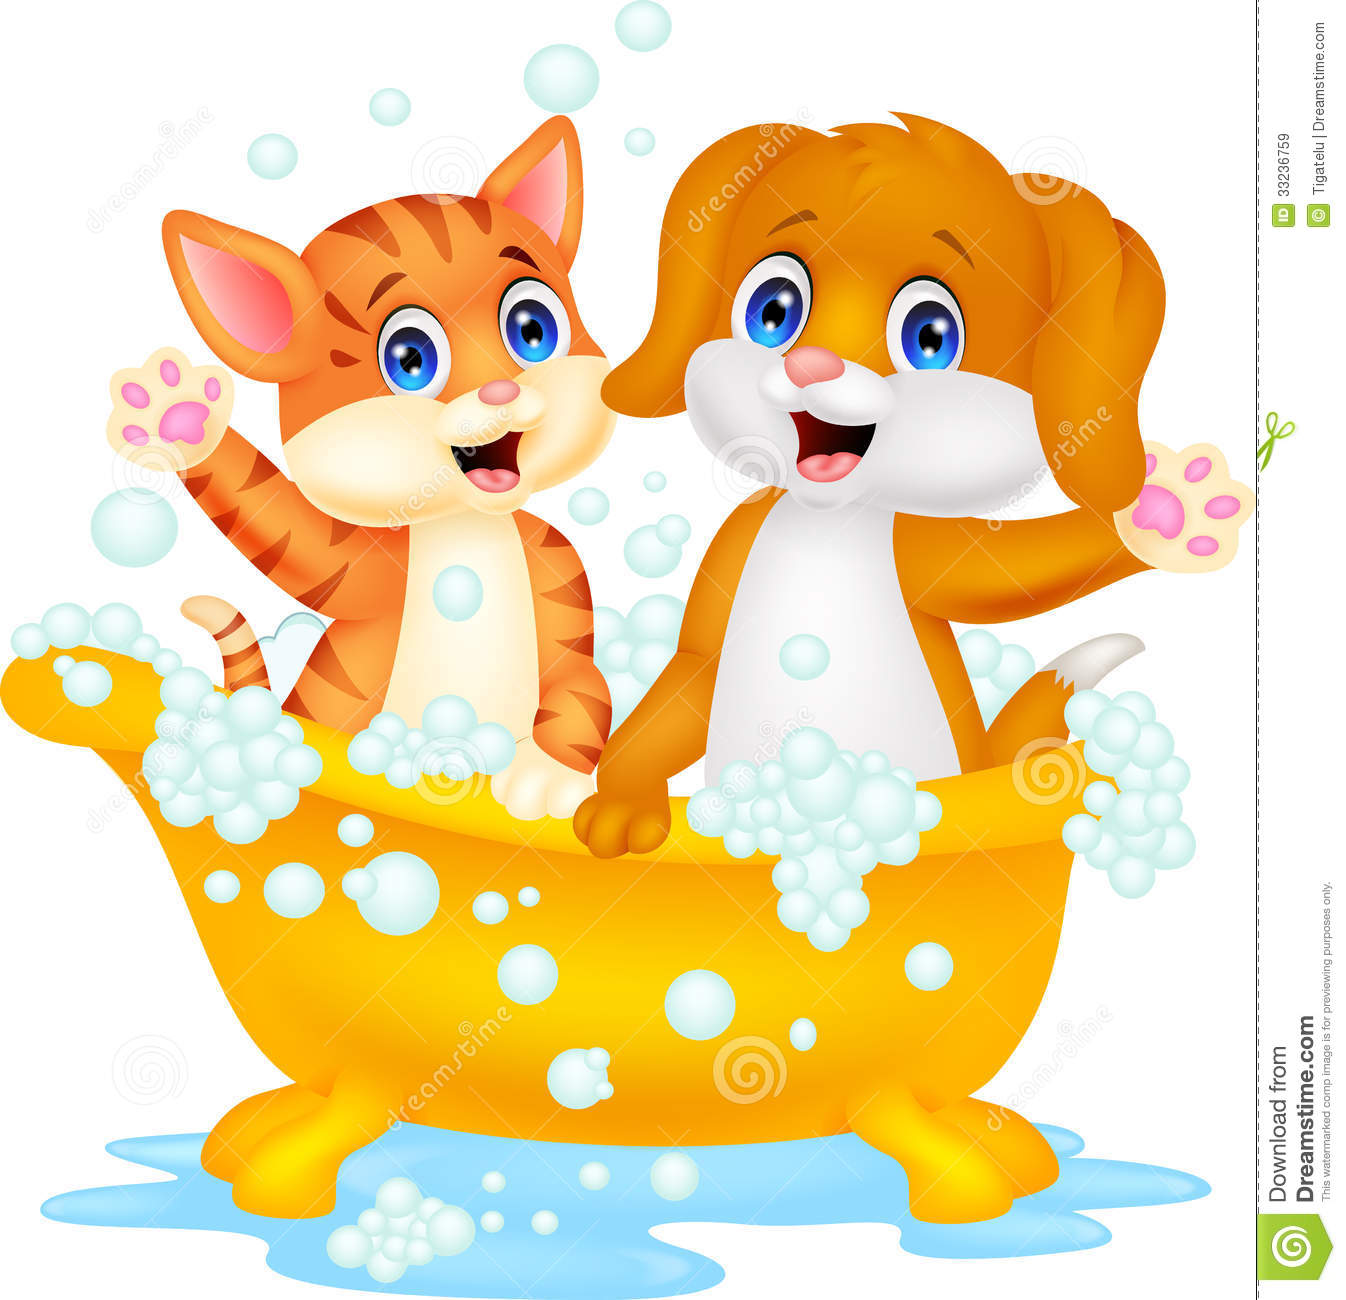 download free cute animated images all pictures top